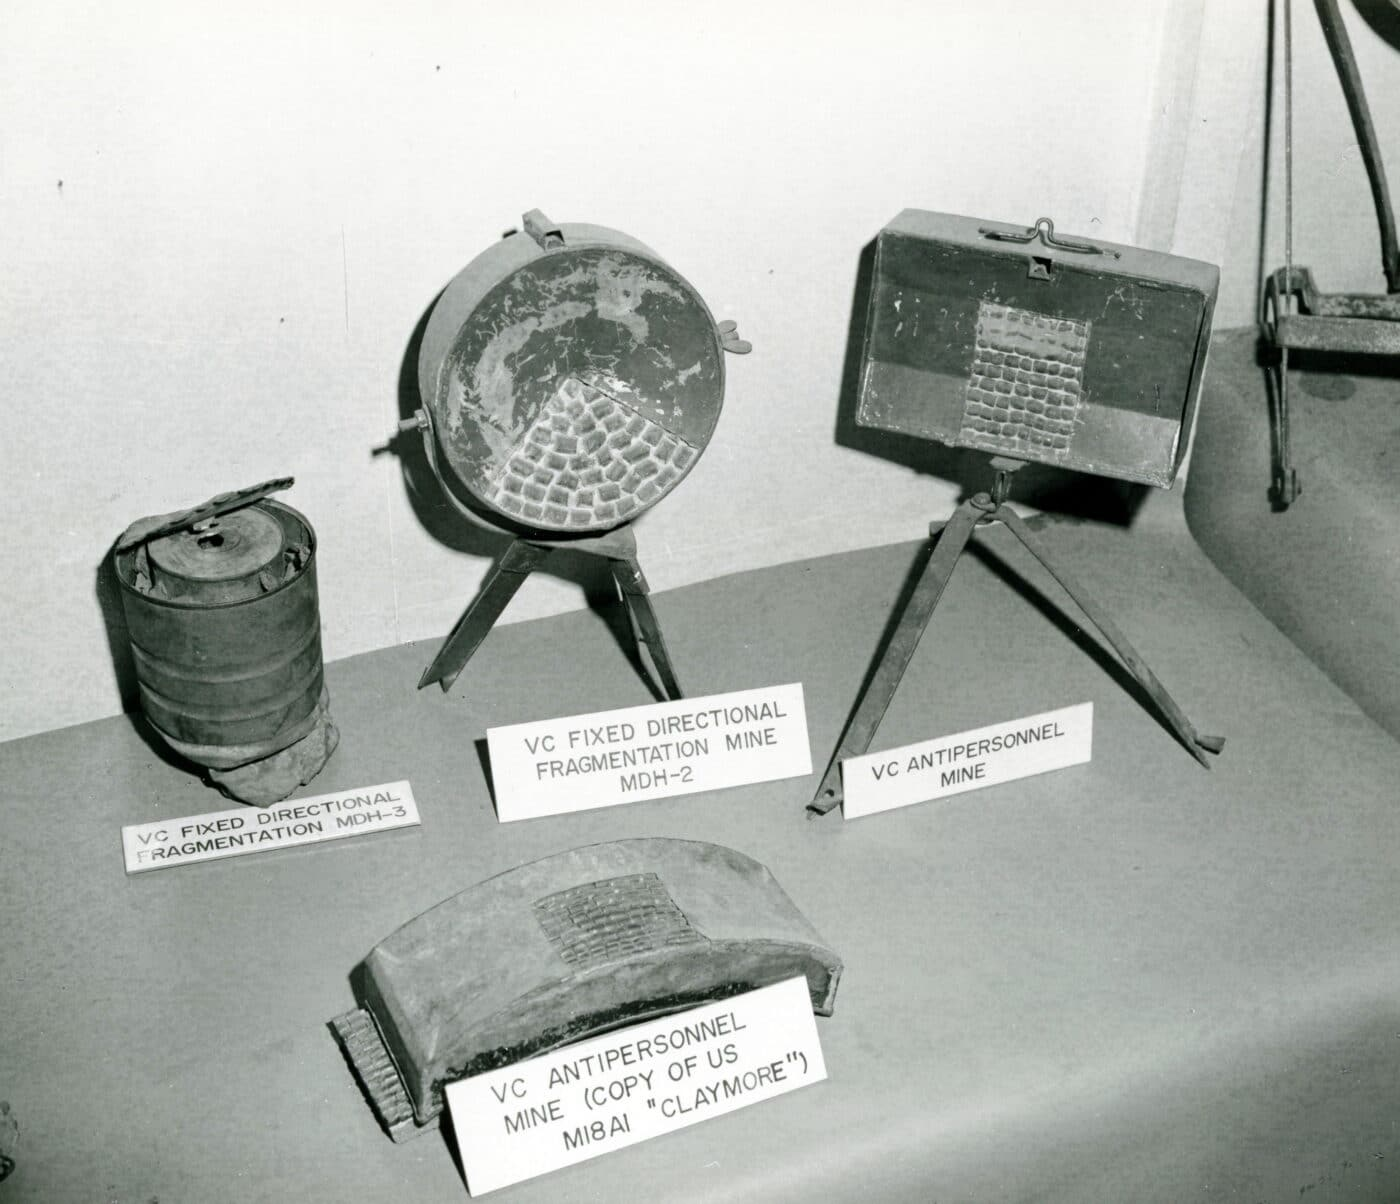 Types of mines used by the Viet Cong in Vietnam